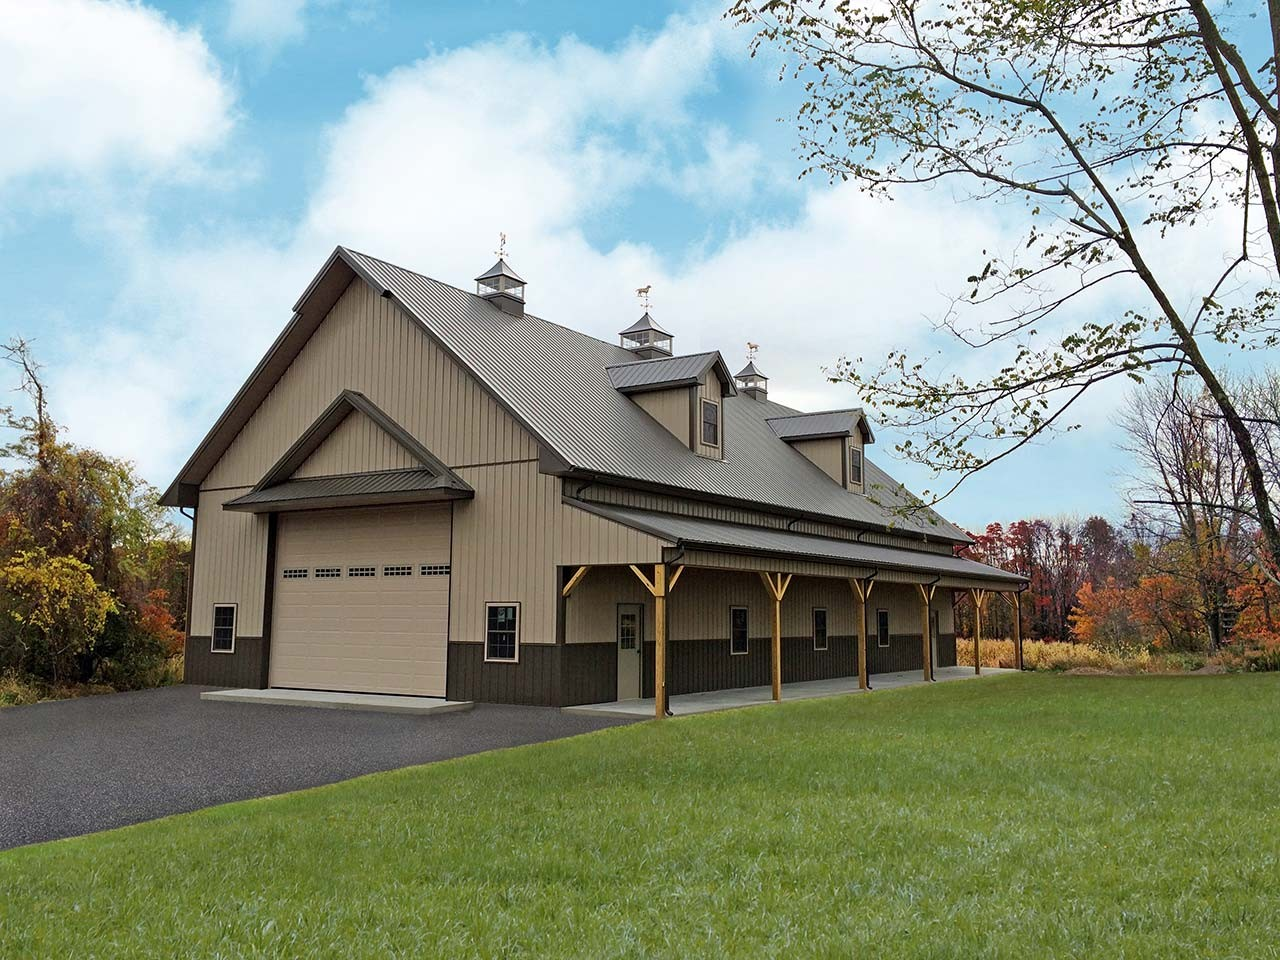 Residential pole barn houses joy studio design gallery for Pole barn home builders